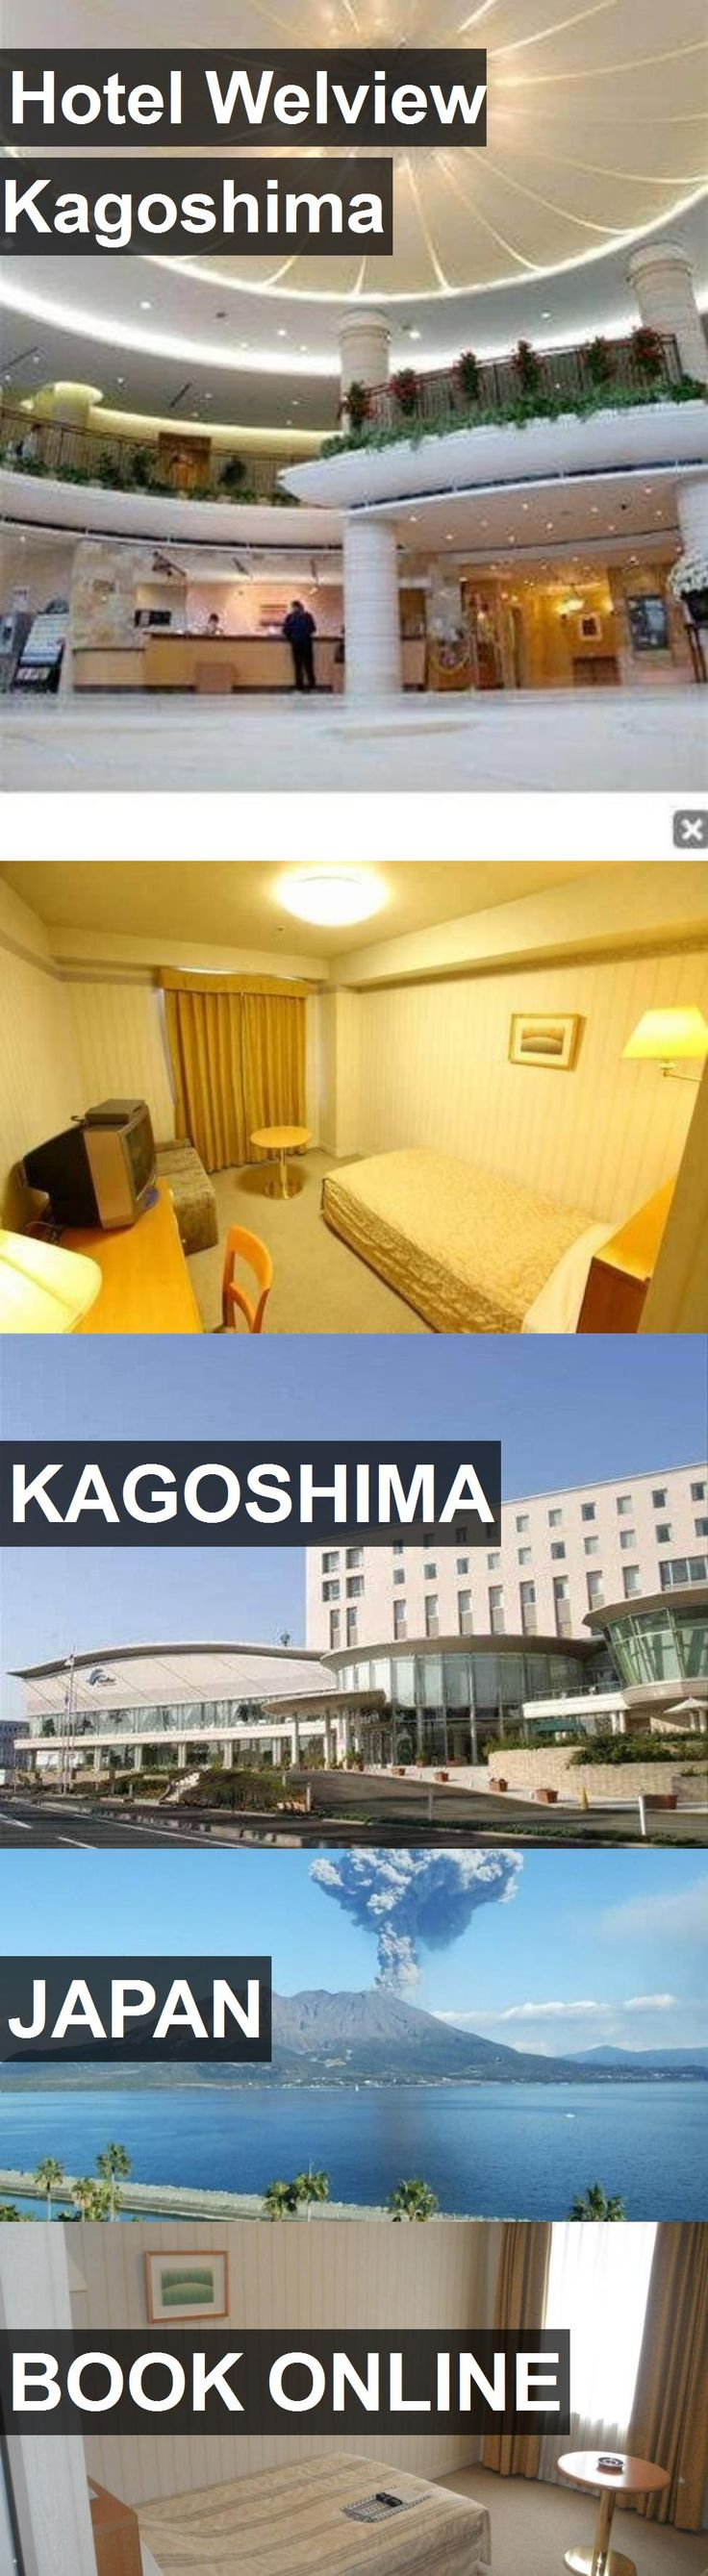 Hotel Hotel Welview Kagoshima in Kagoshima, Japan. For more information, photos, reviews and best prices please follow the link. #Japan #Kagoshima #hotel #travel #vacation